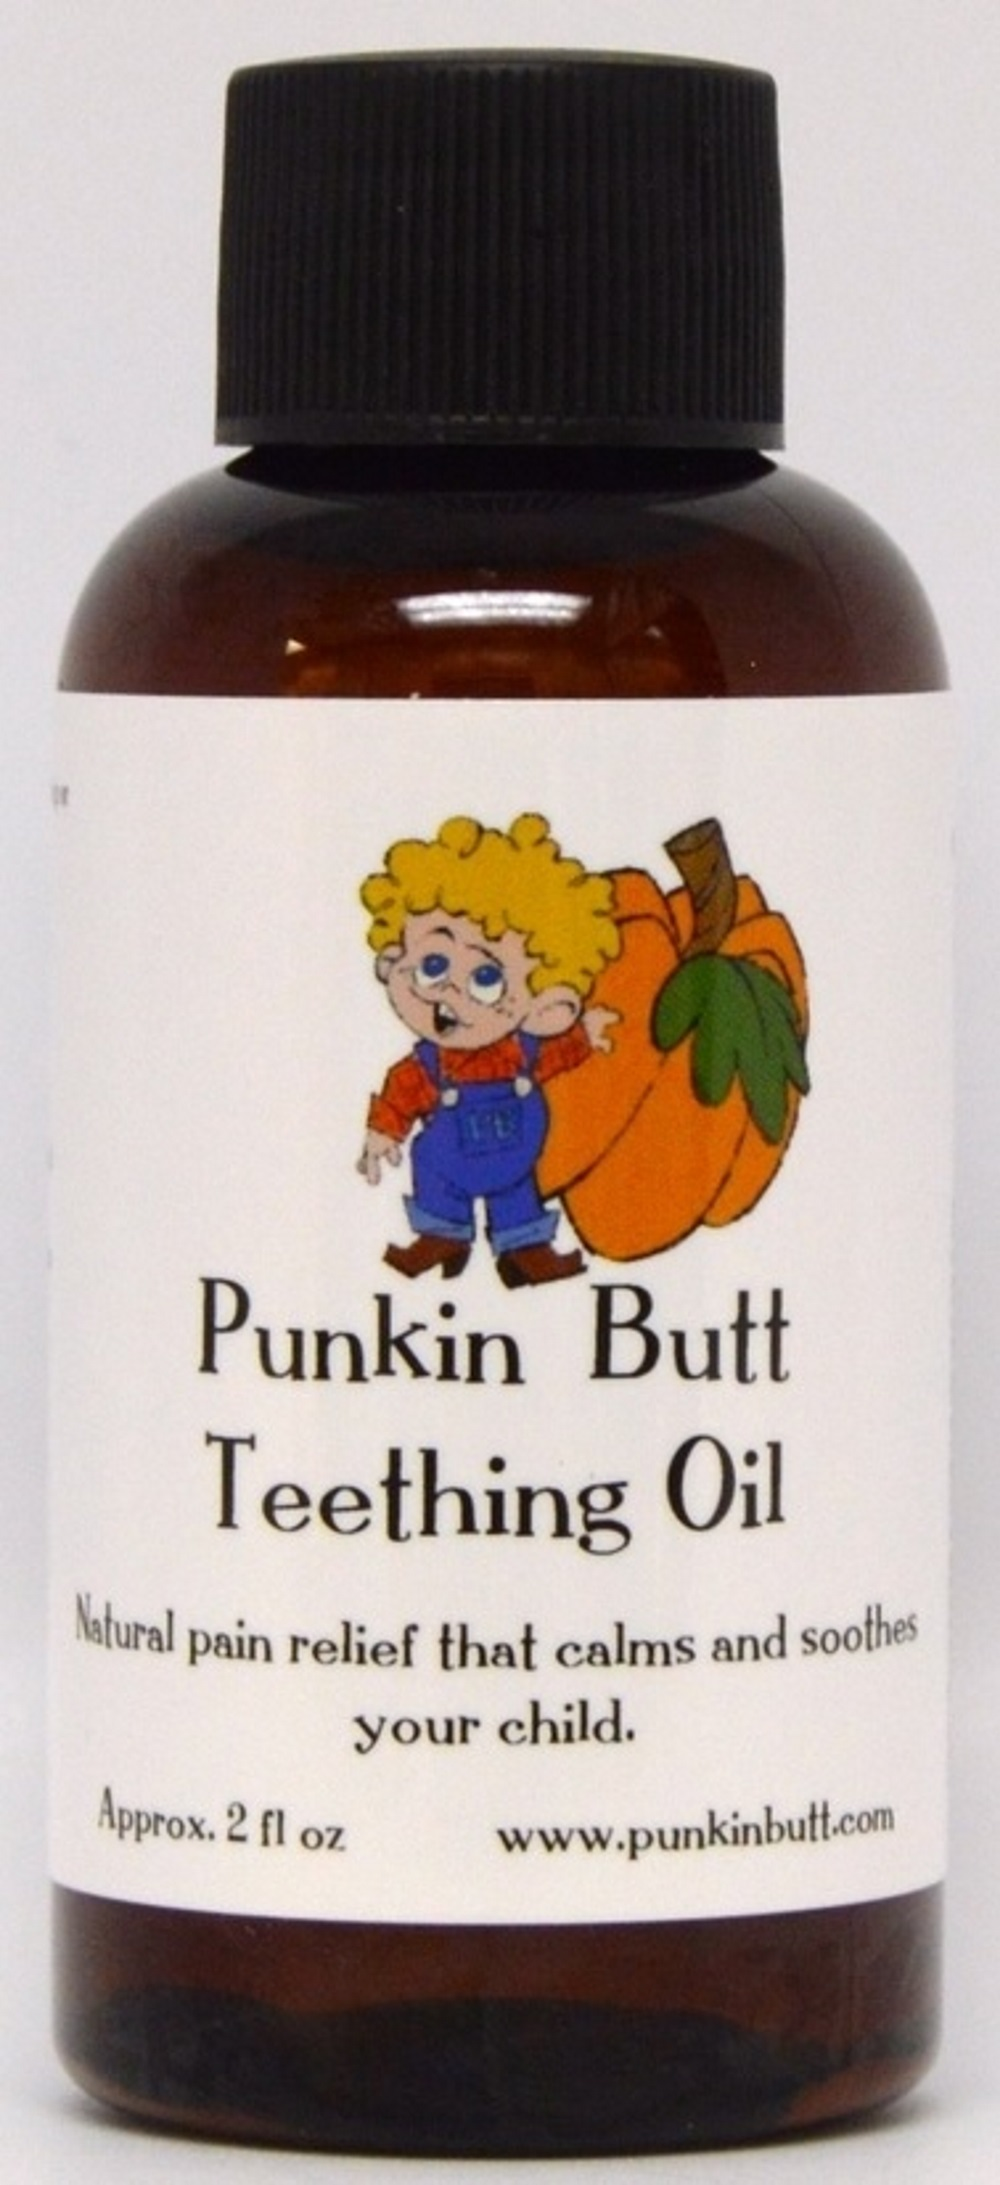 Punkin Butt Teething Oil - 2 Ounce